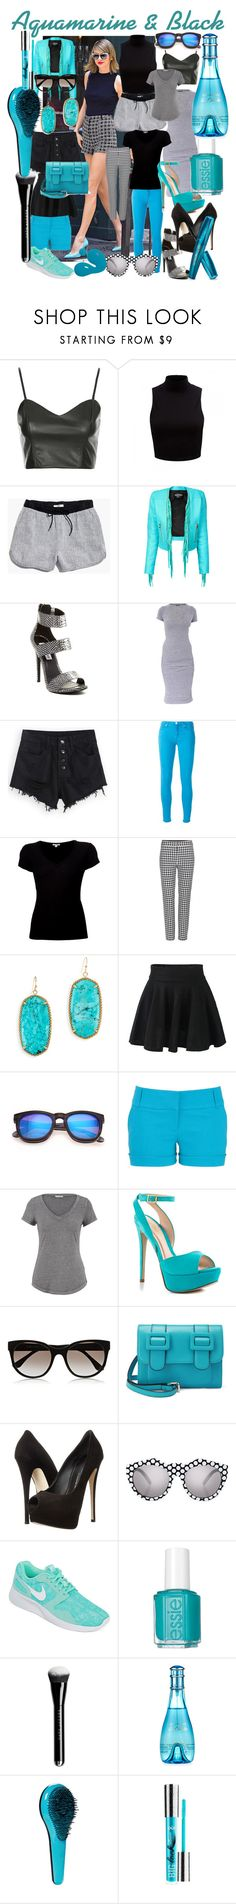 """""""Untitled #254"""" by jennvsjewels ❤ liked on Polyvore featuring Topshop, Forever New, Madewell, Balmain, Steve Madden, Monrow, 7 For All Mankind, James Perse, Diane Von Furstenberg and Kendra Scott"""